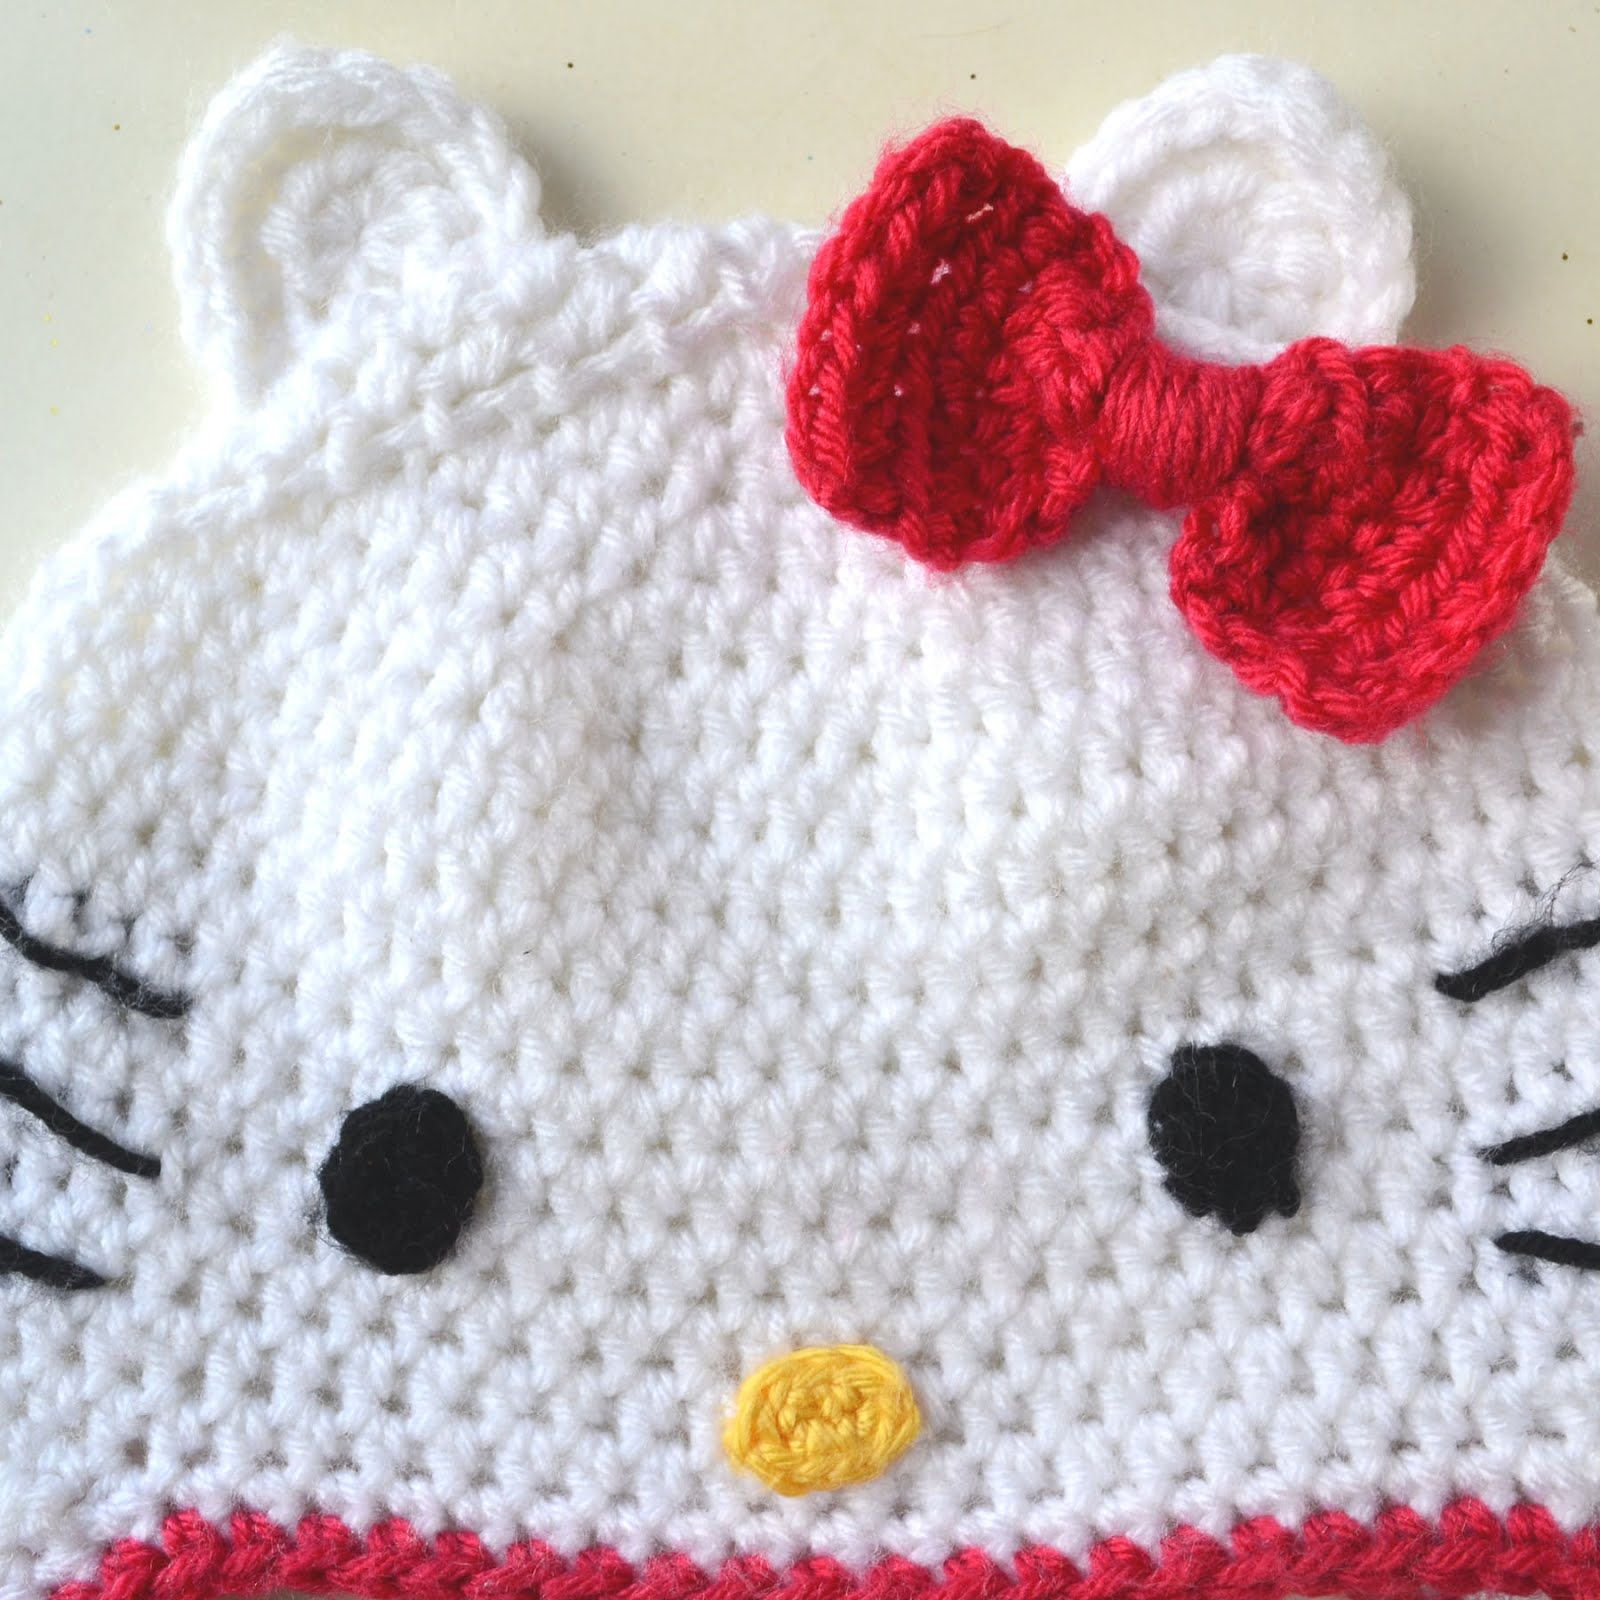 I realized this weekend that I had not posted the Hello Kitty Hat ...